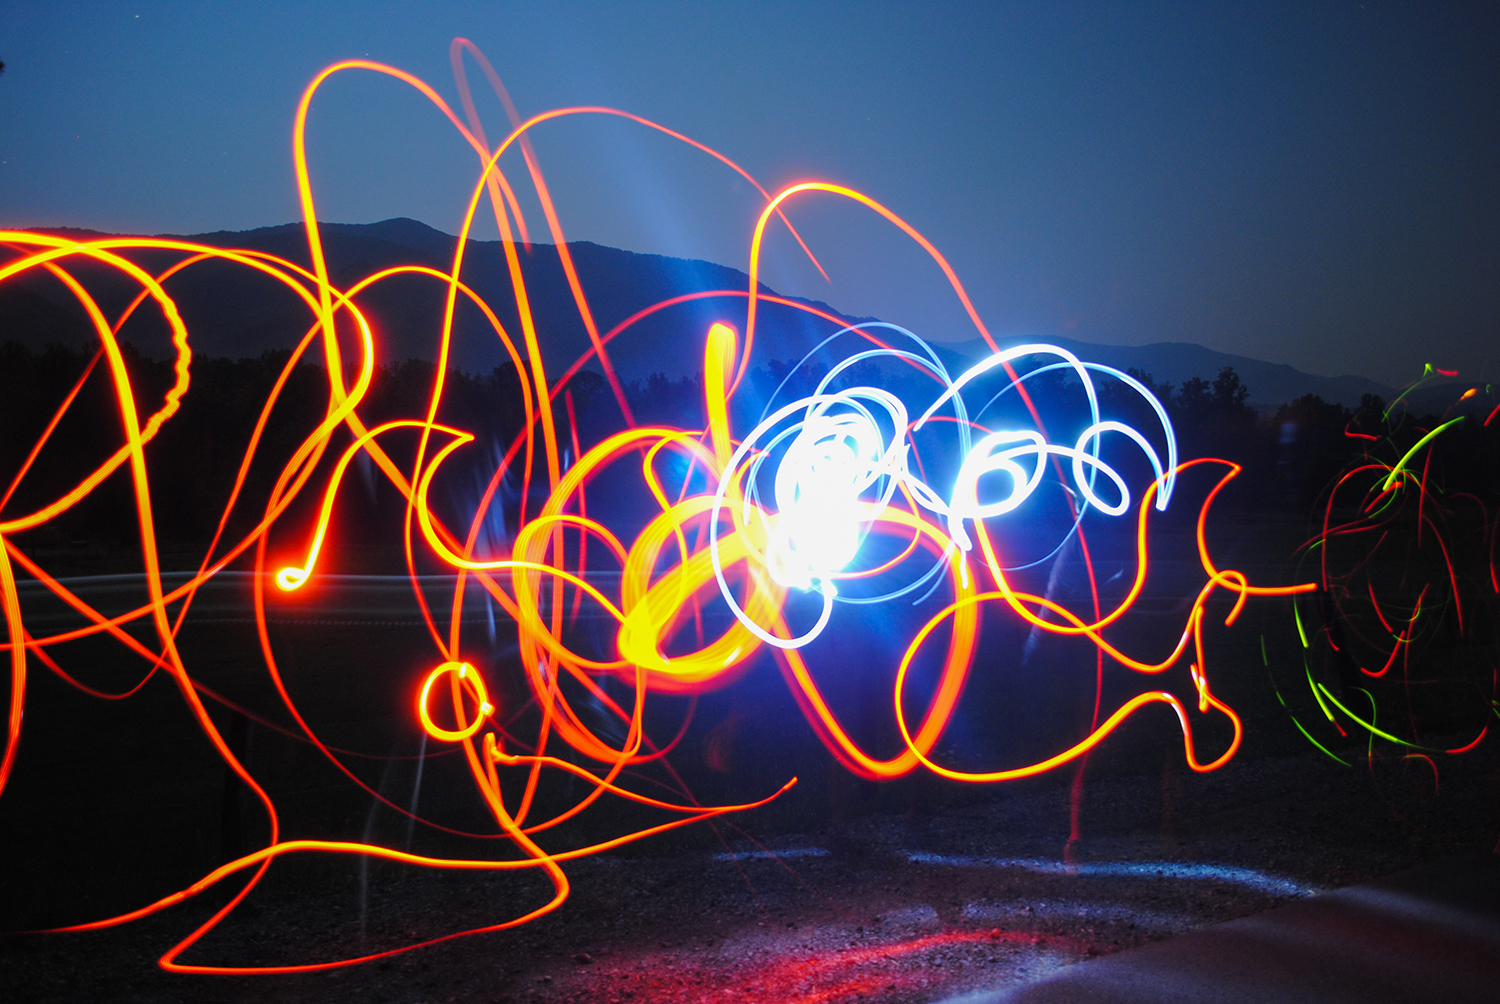 Light art fascinates me.  I need to do more of it.